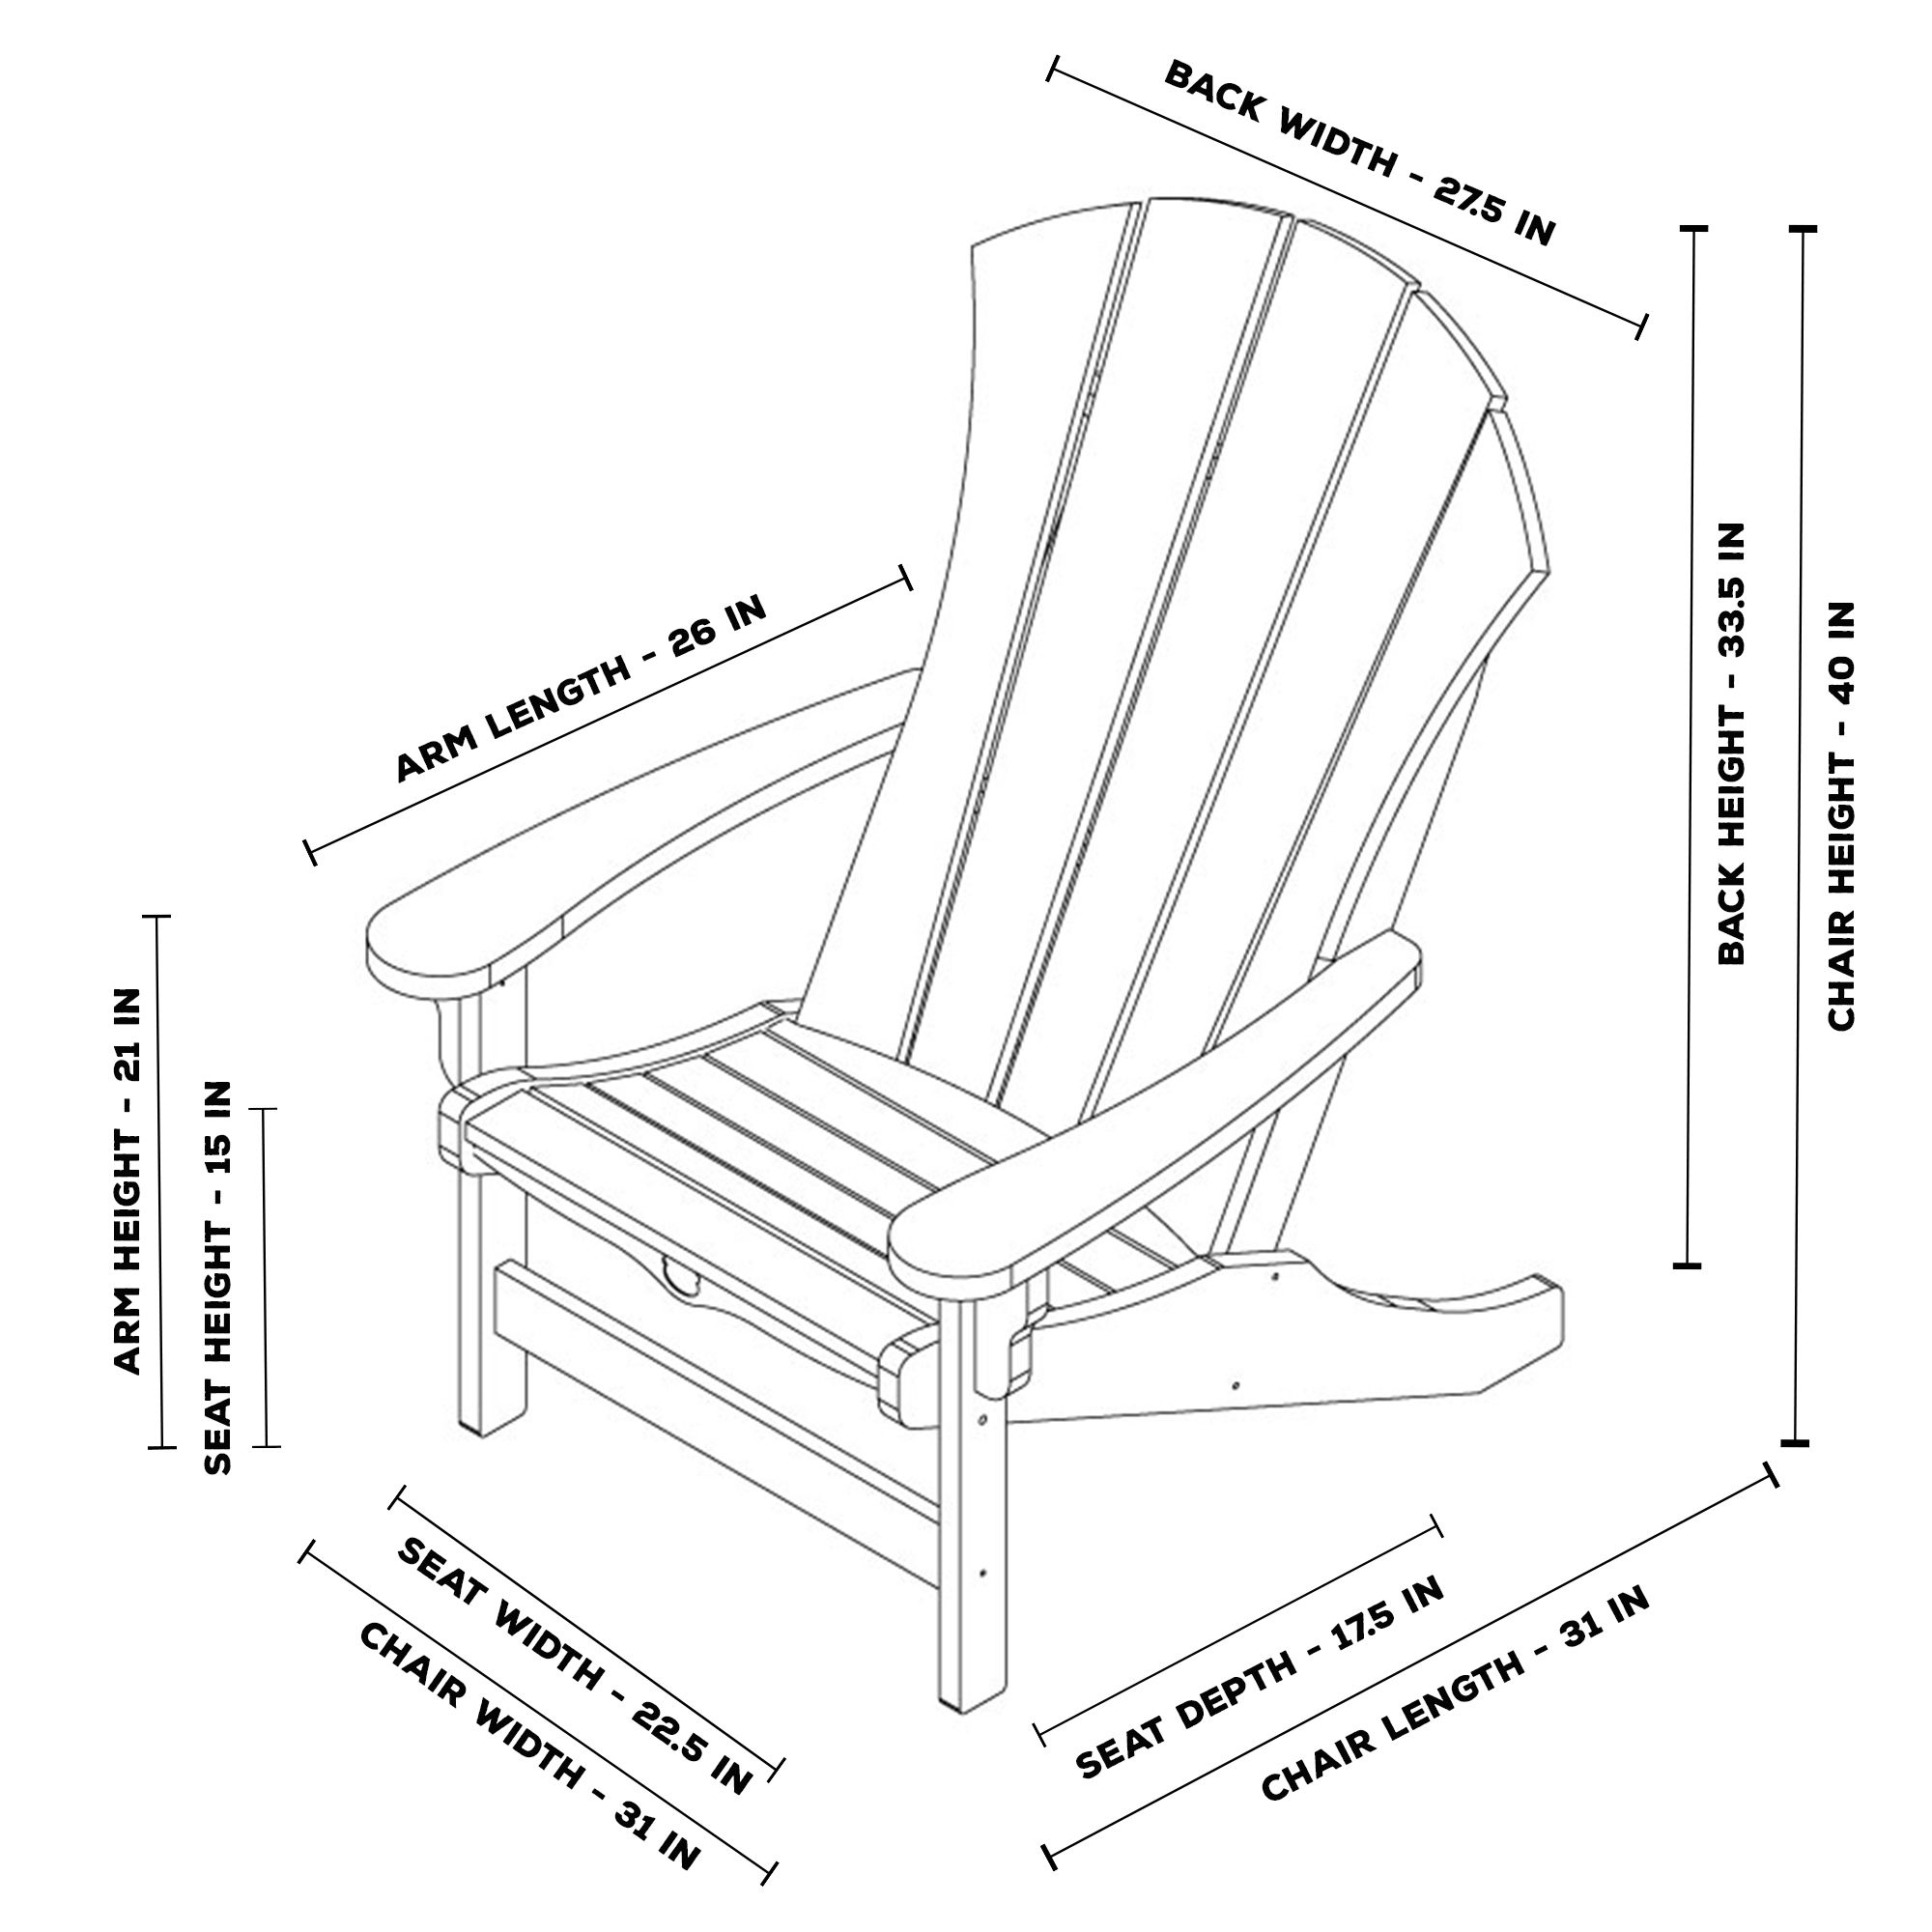 Looking to build your own Adirondack chair? View an easy